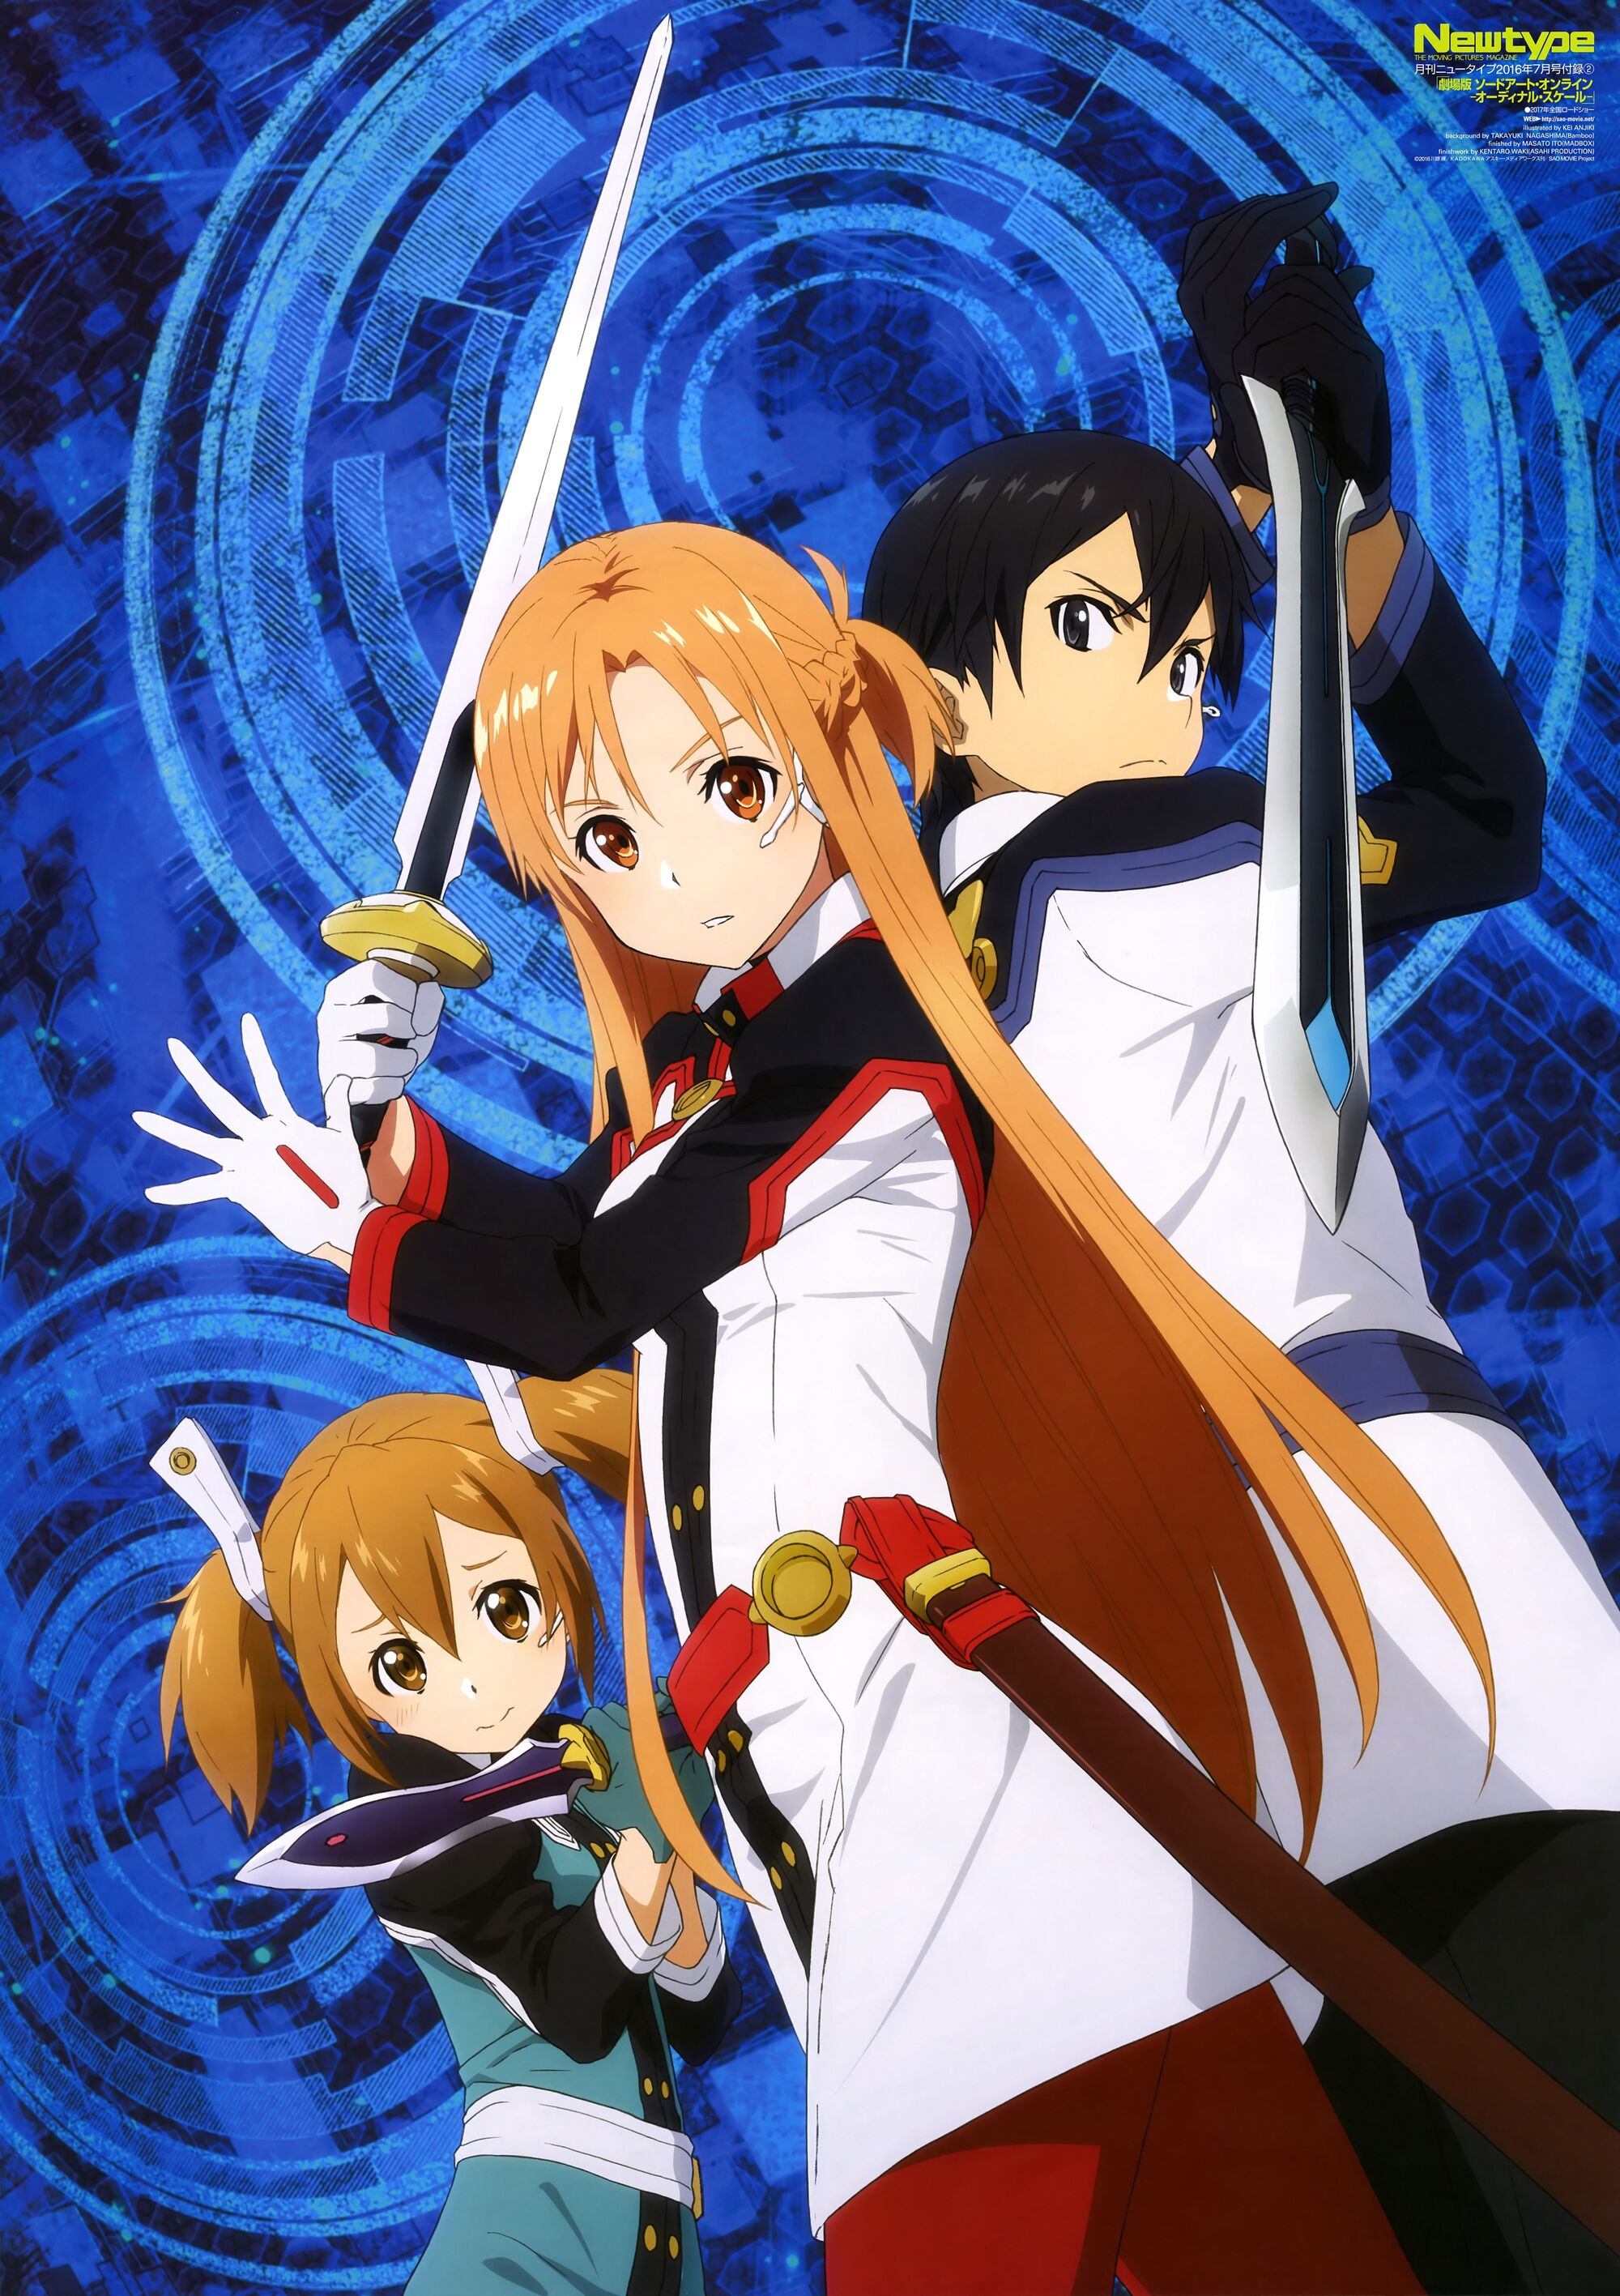 sword art online wikipedia